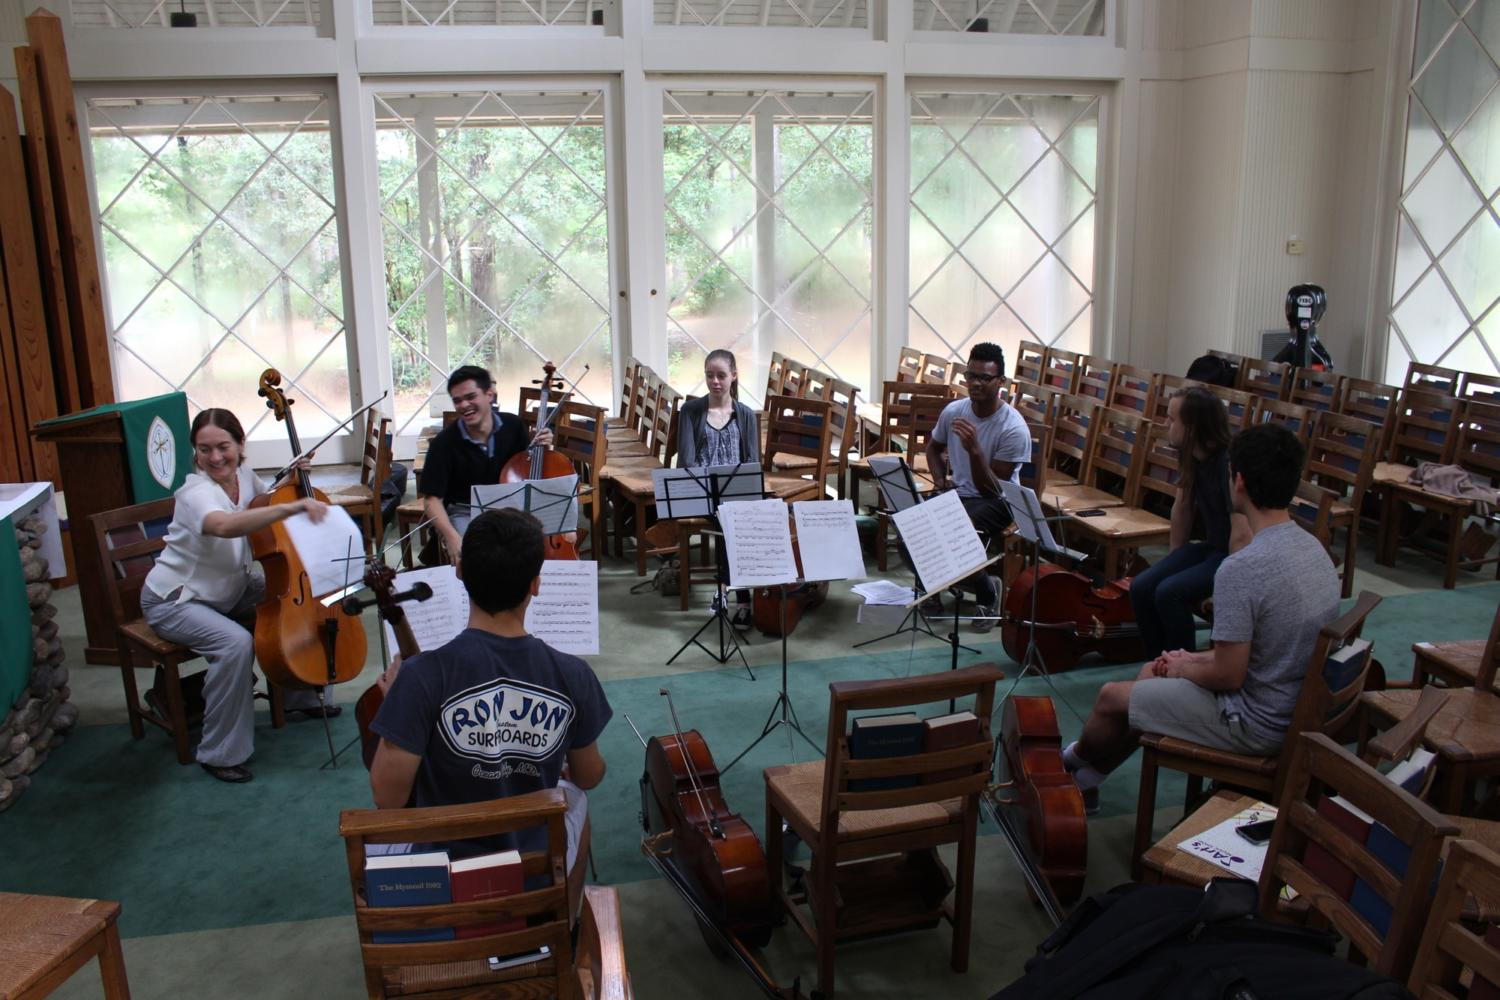 Cello students play at retreat. This retreat is a first for the performance majors. Photo credit: Anna Knapp